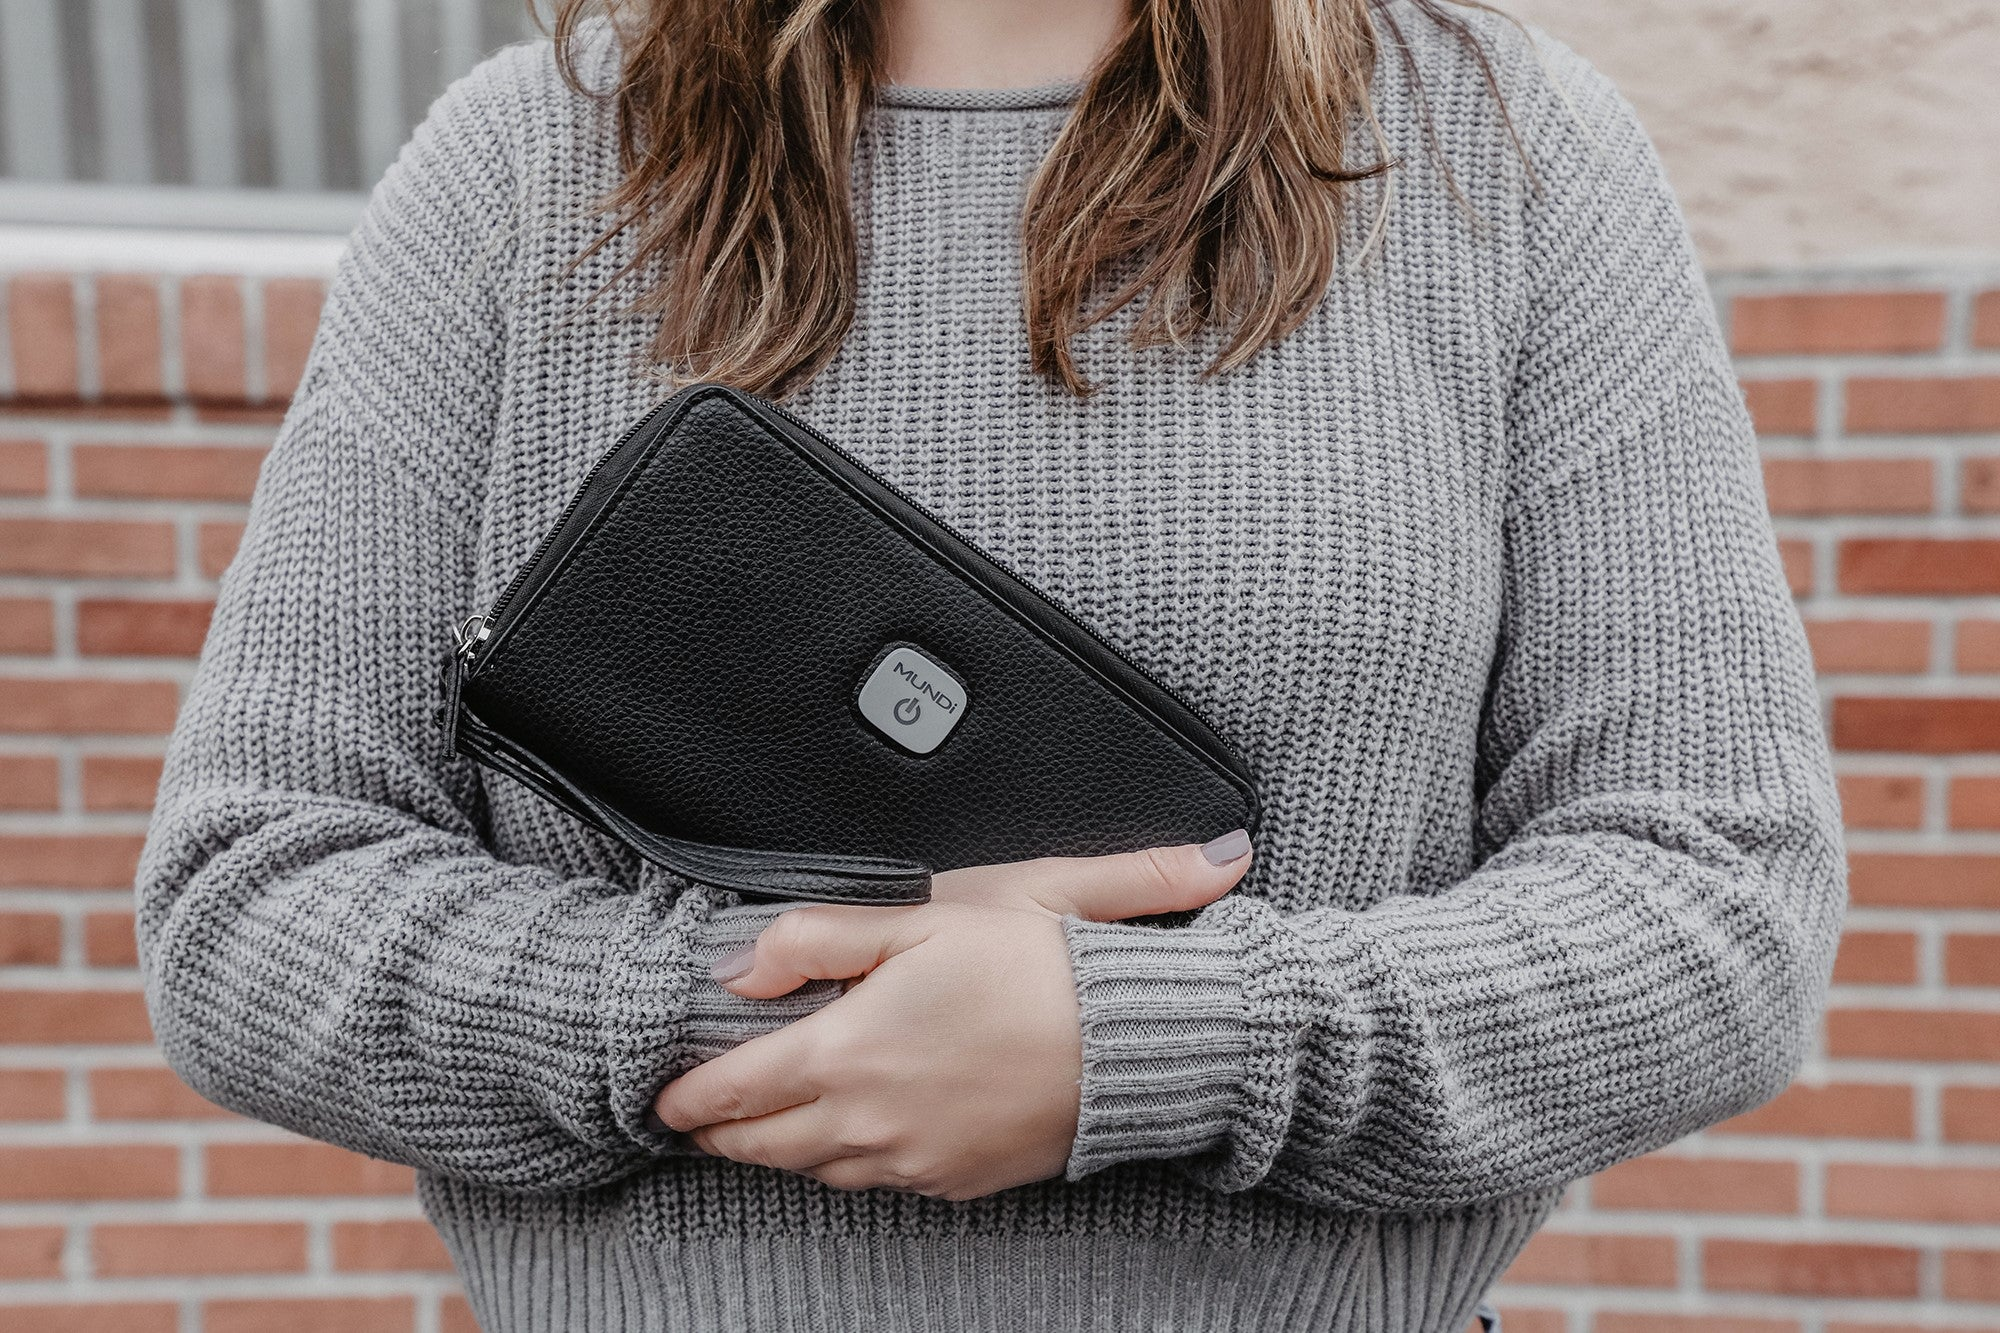 MultiSac Handbags and Mundi Wallets Team Up to offer Personal Safety Gear!